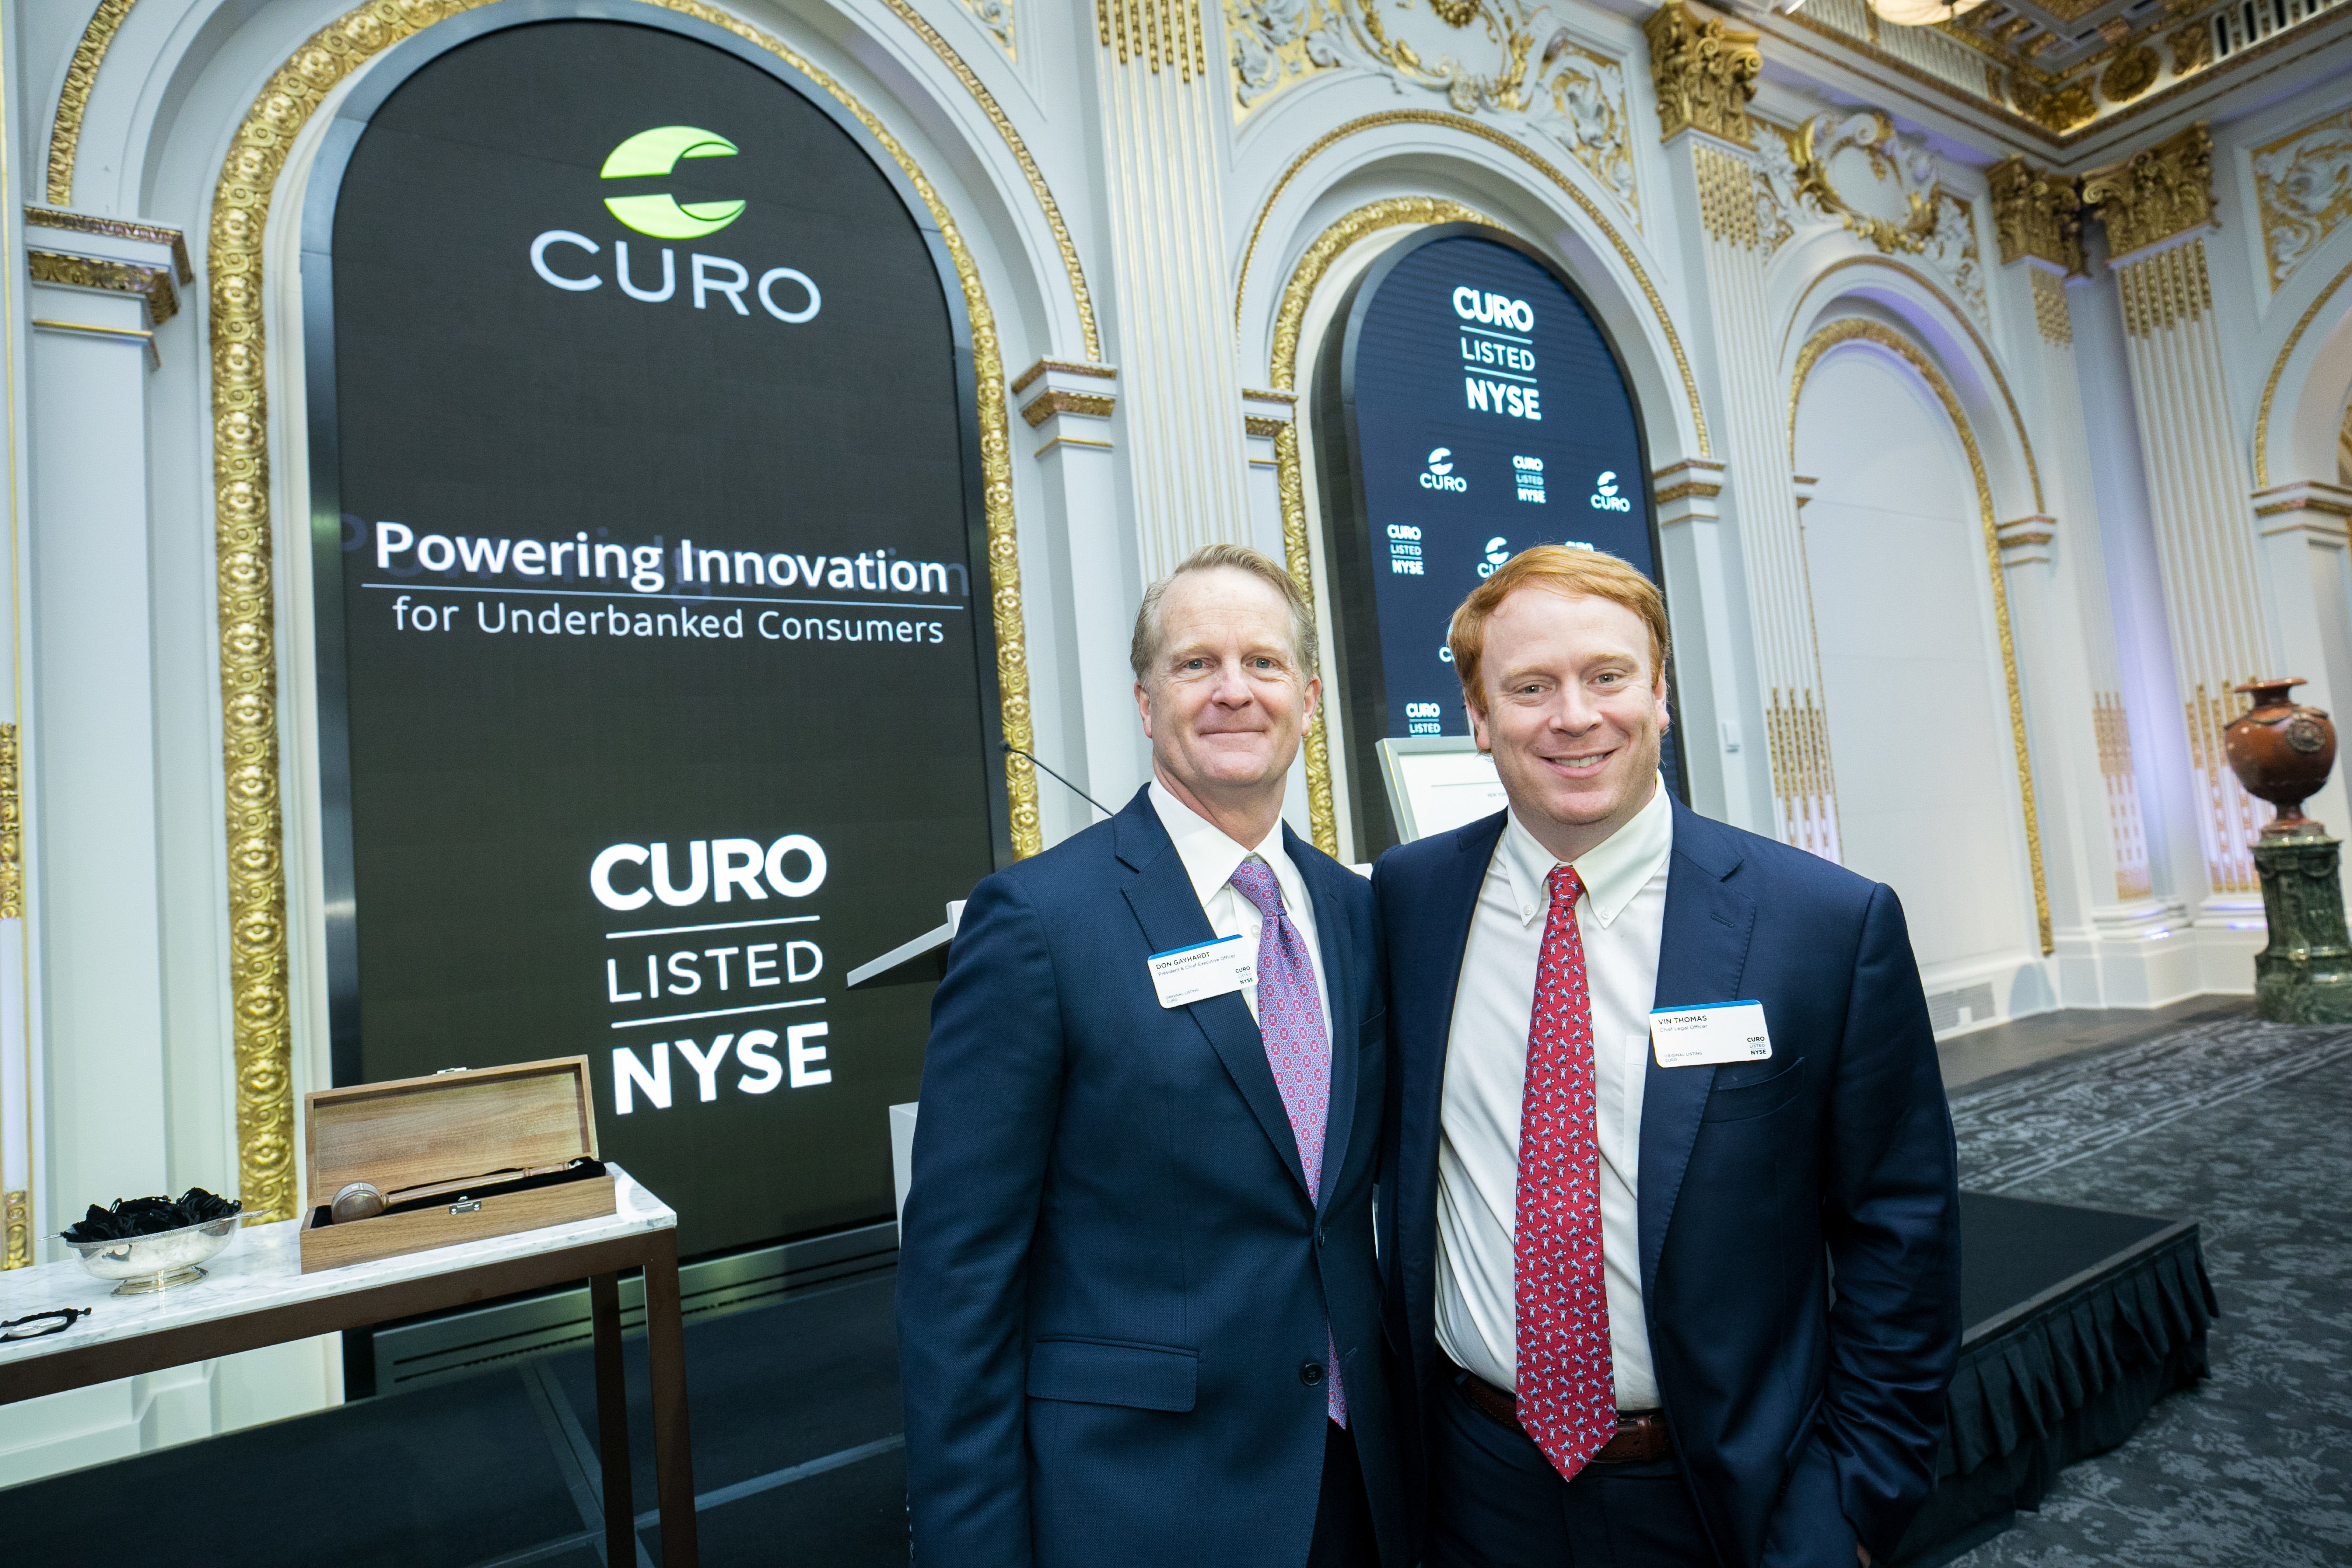 CURO Group Holdings Corp. Announces Fourth Quarter and Full Year 2017 Financial Results and Issues 2018 Earnings Outlook